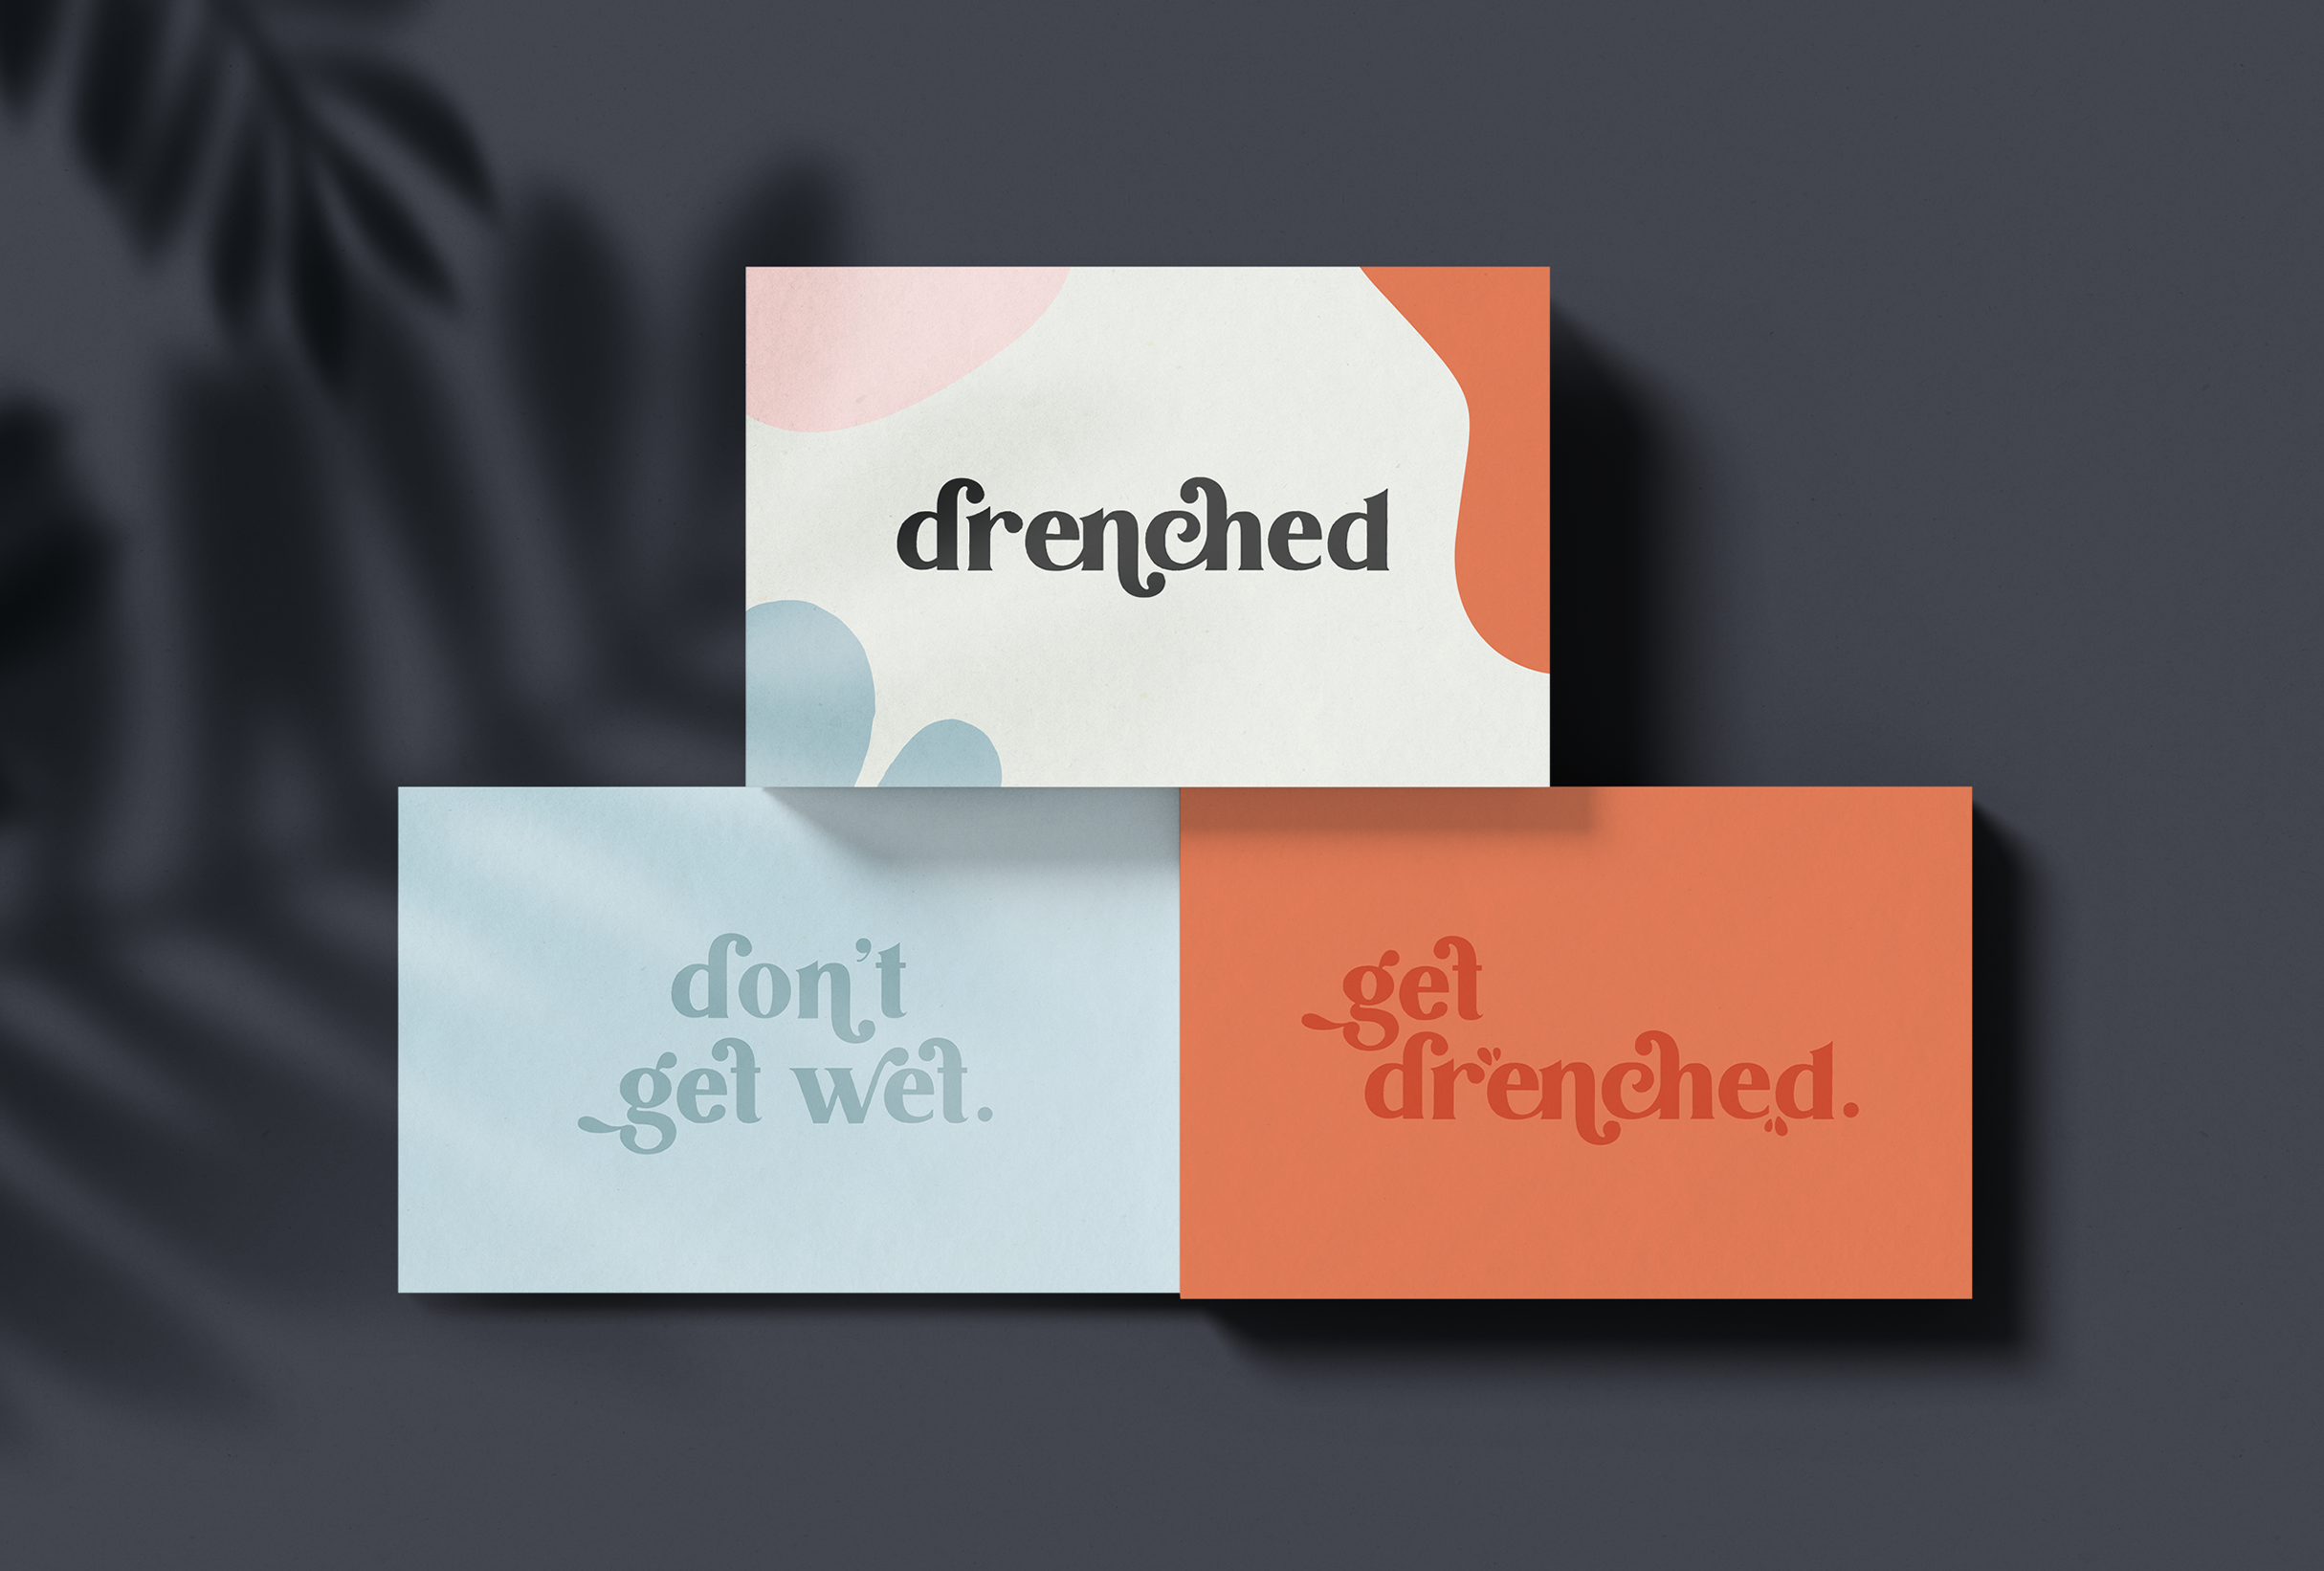 Business card design for Drenched, selling luxury products that are essential for water-based needs - designed by Wiltshire-based graphic designer, Kaye Huett